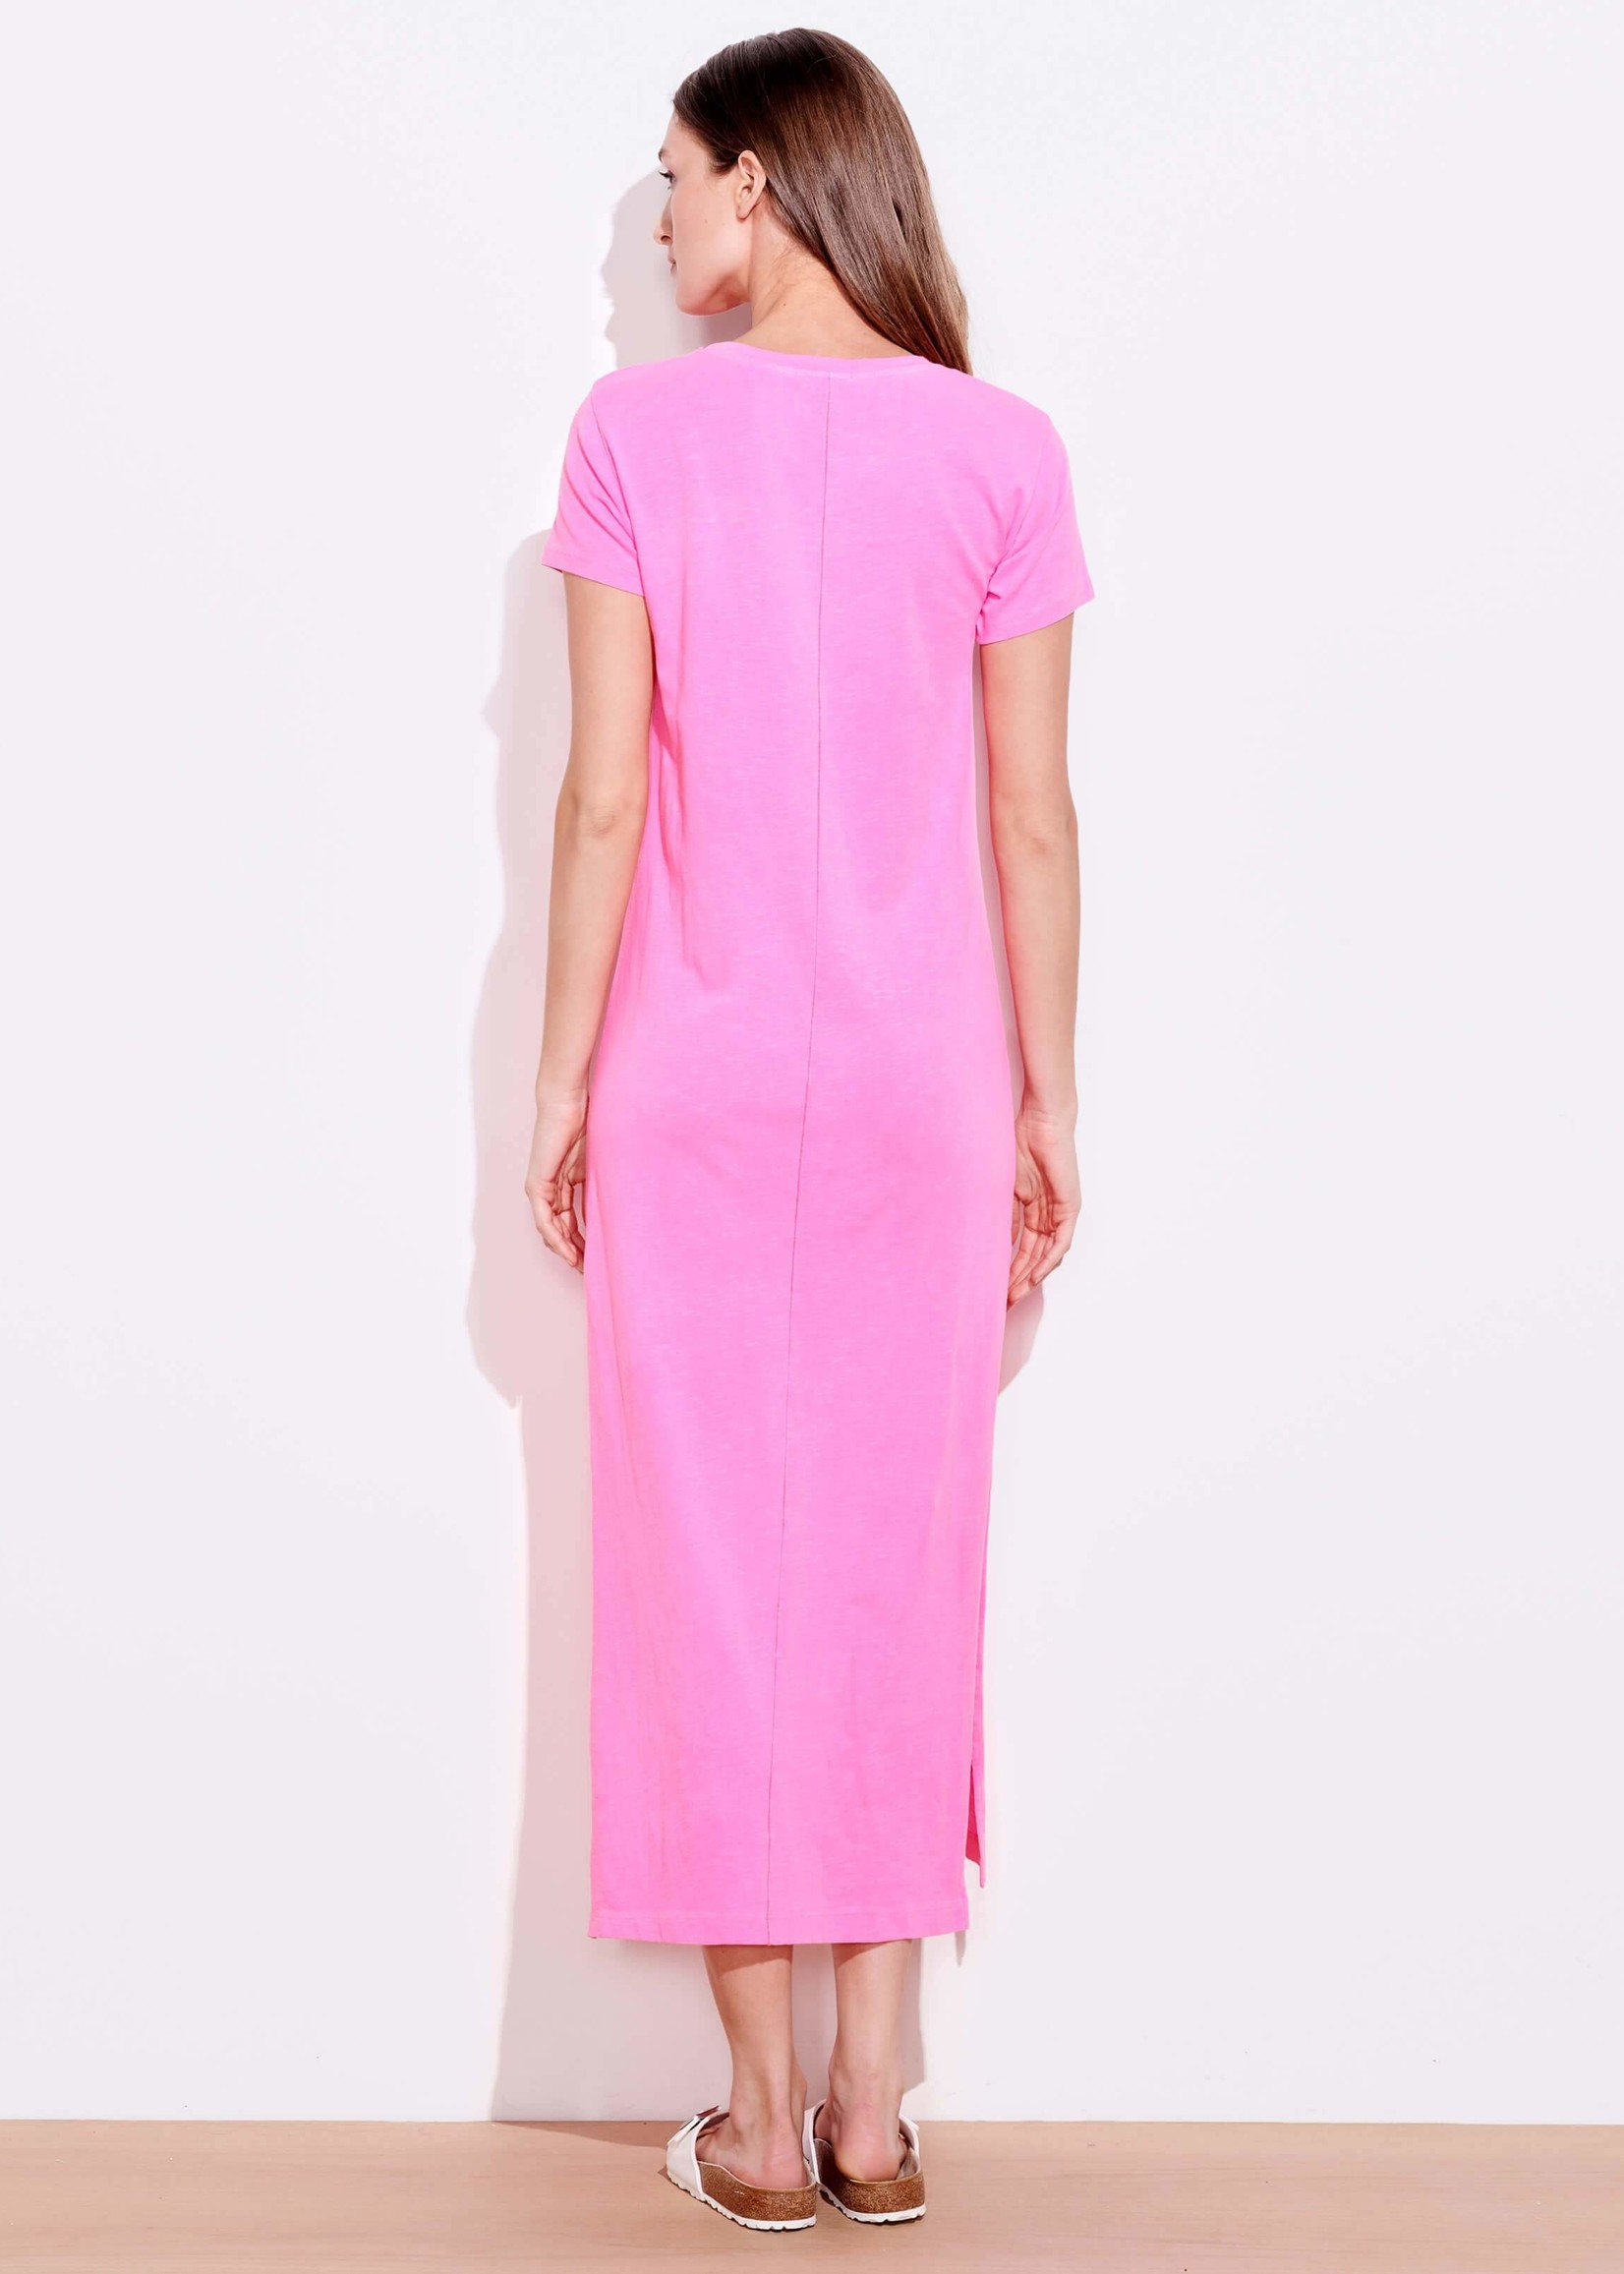 SUNDRY MAXI W/ SLIT IN NEON PINK